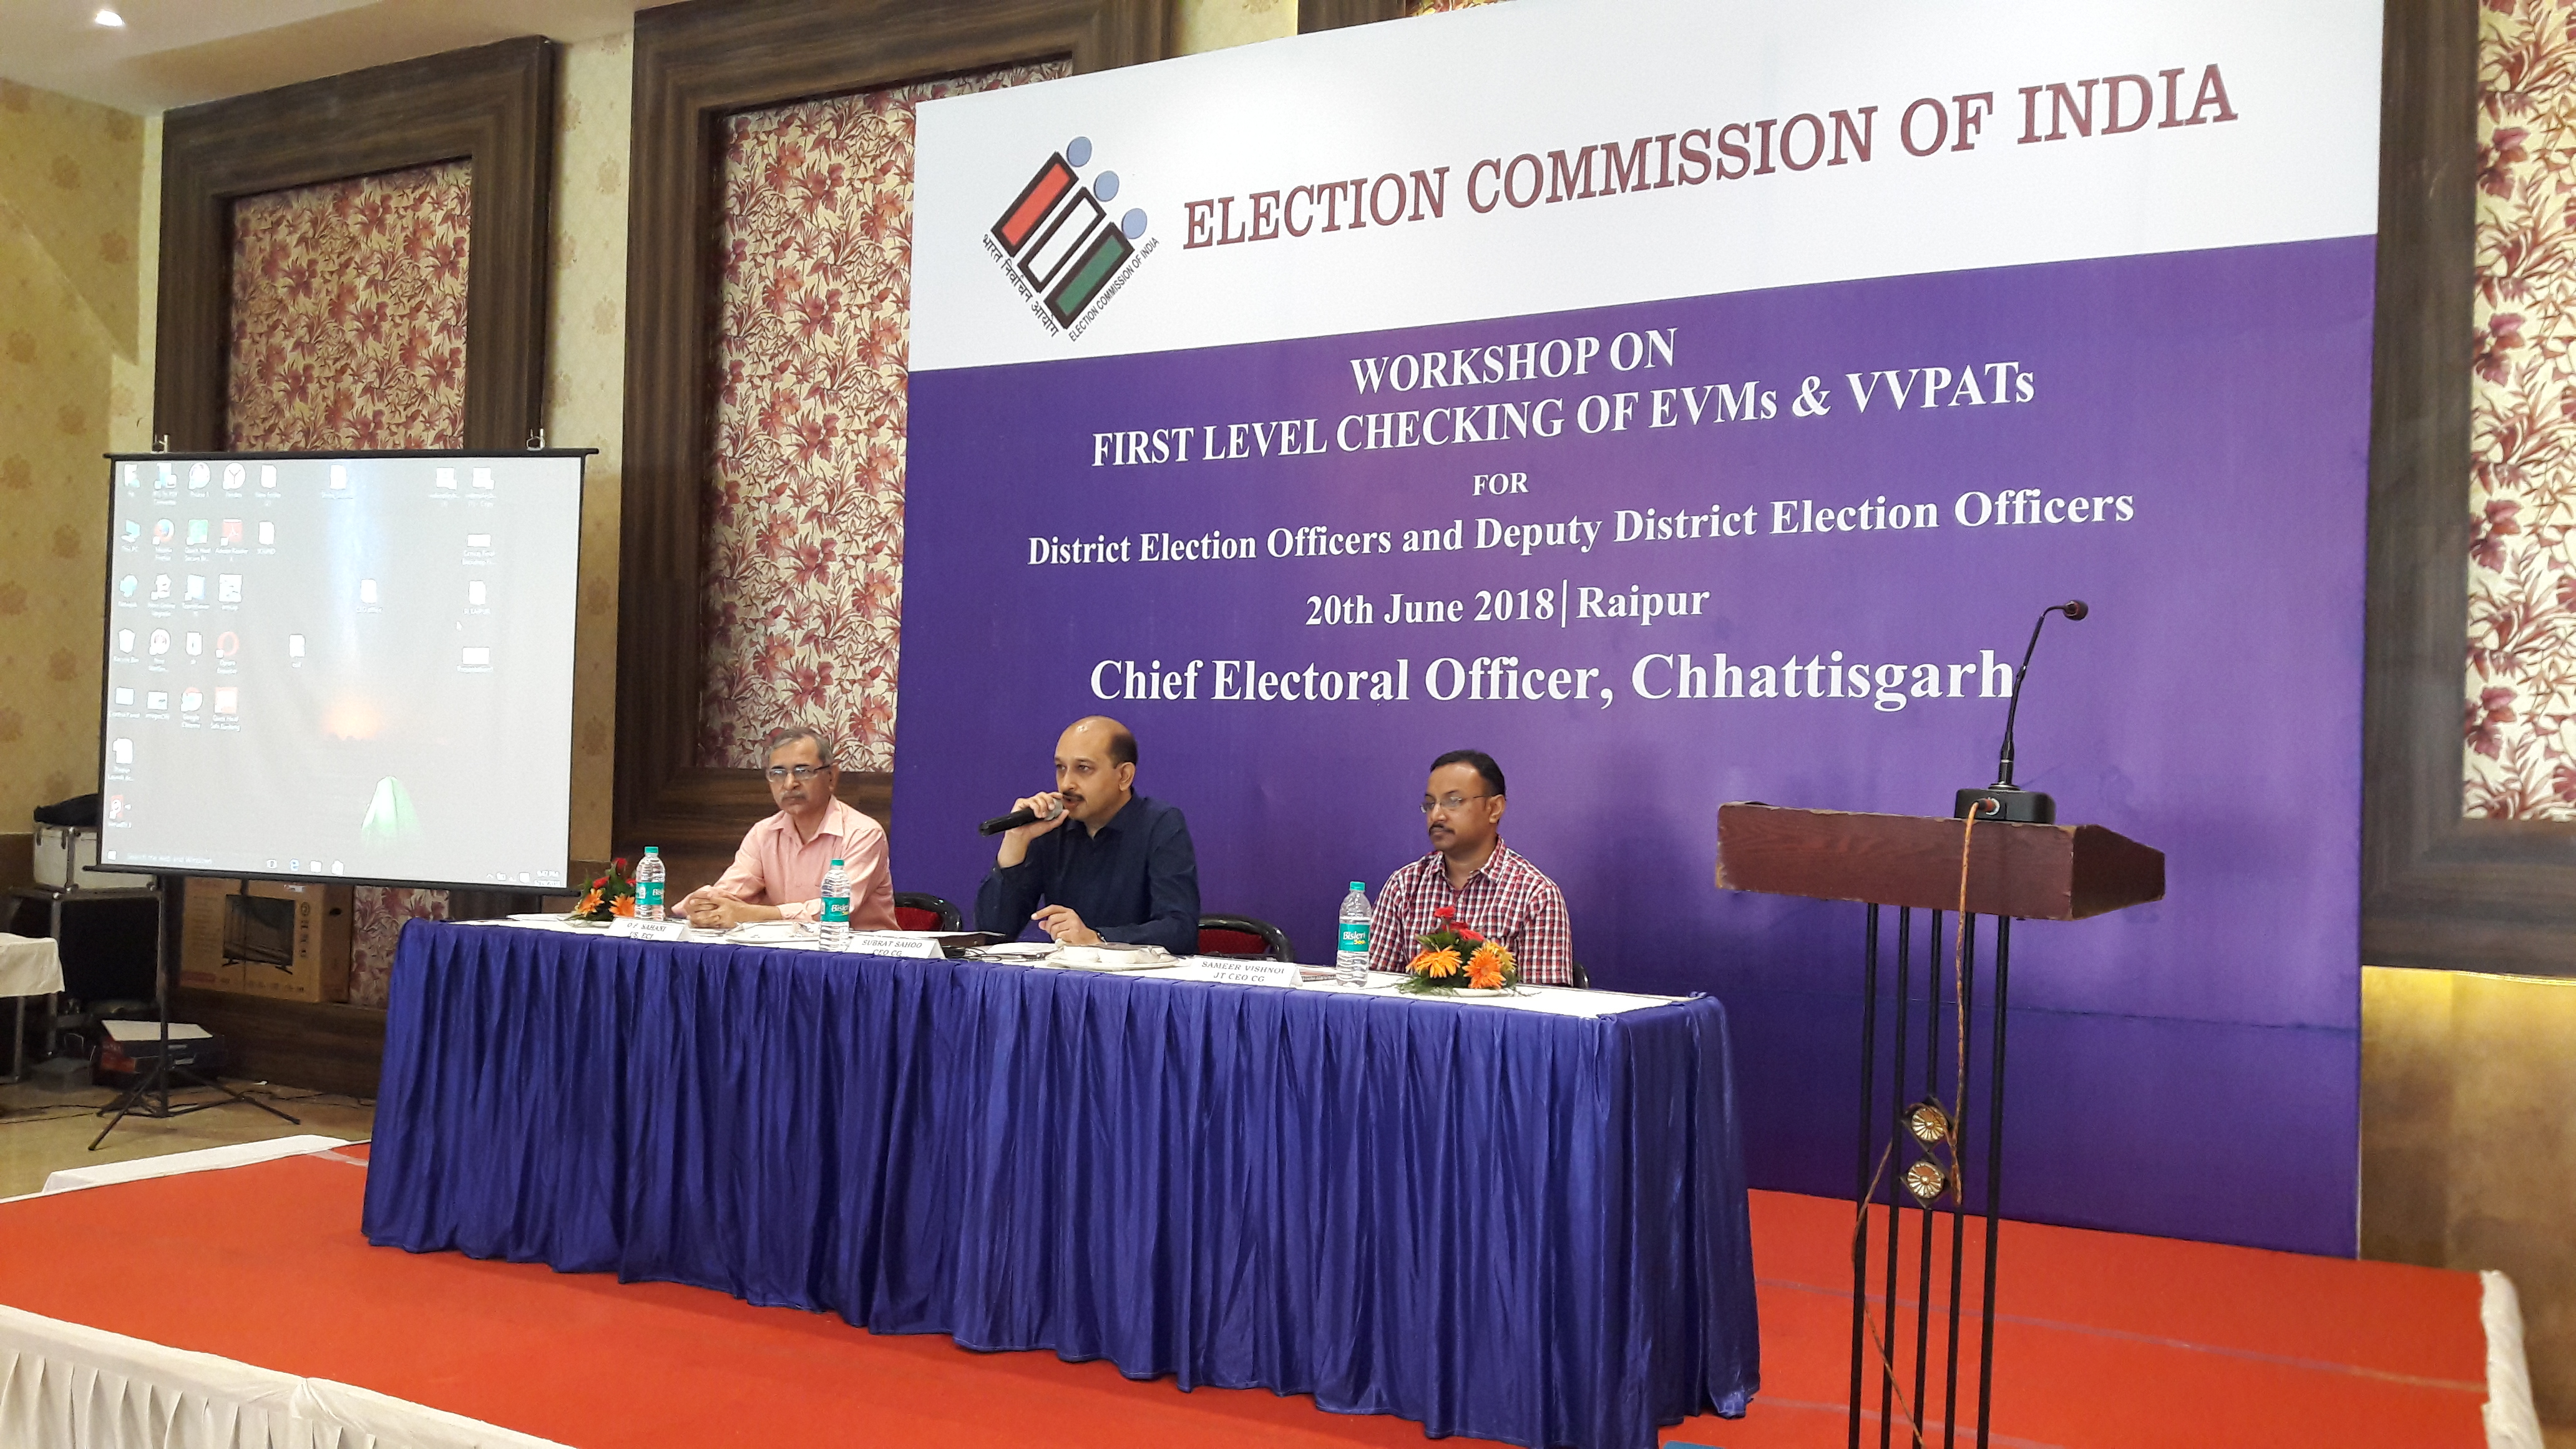 Workshop on First Level Checking of EVMs and VVPAT